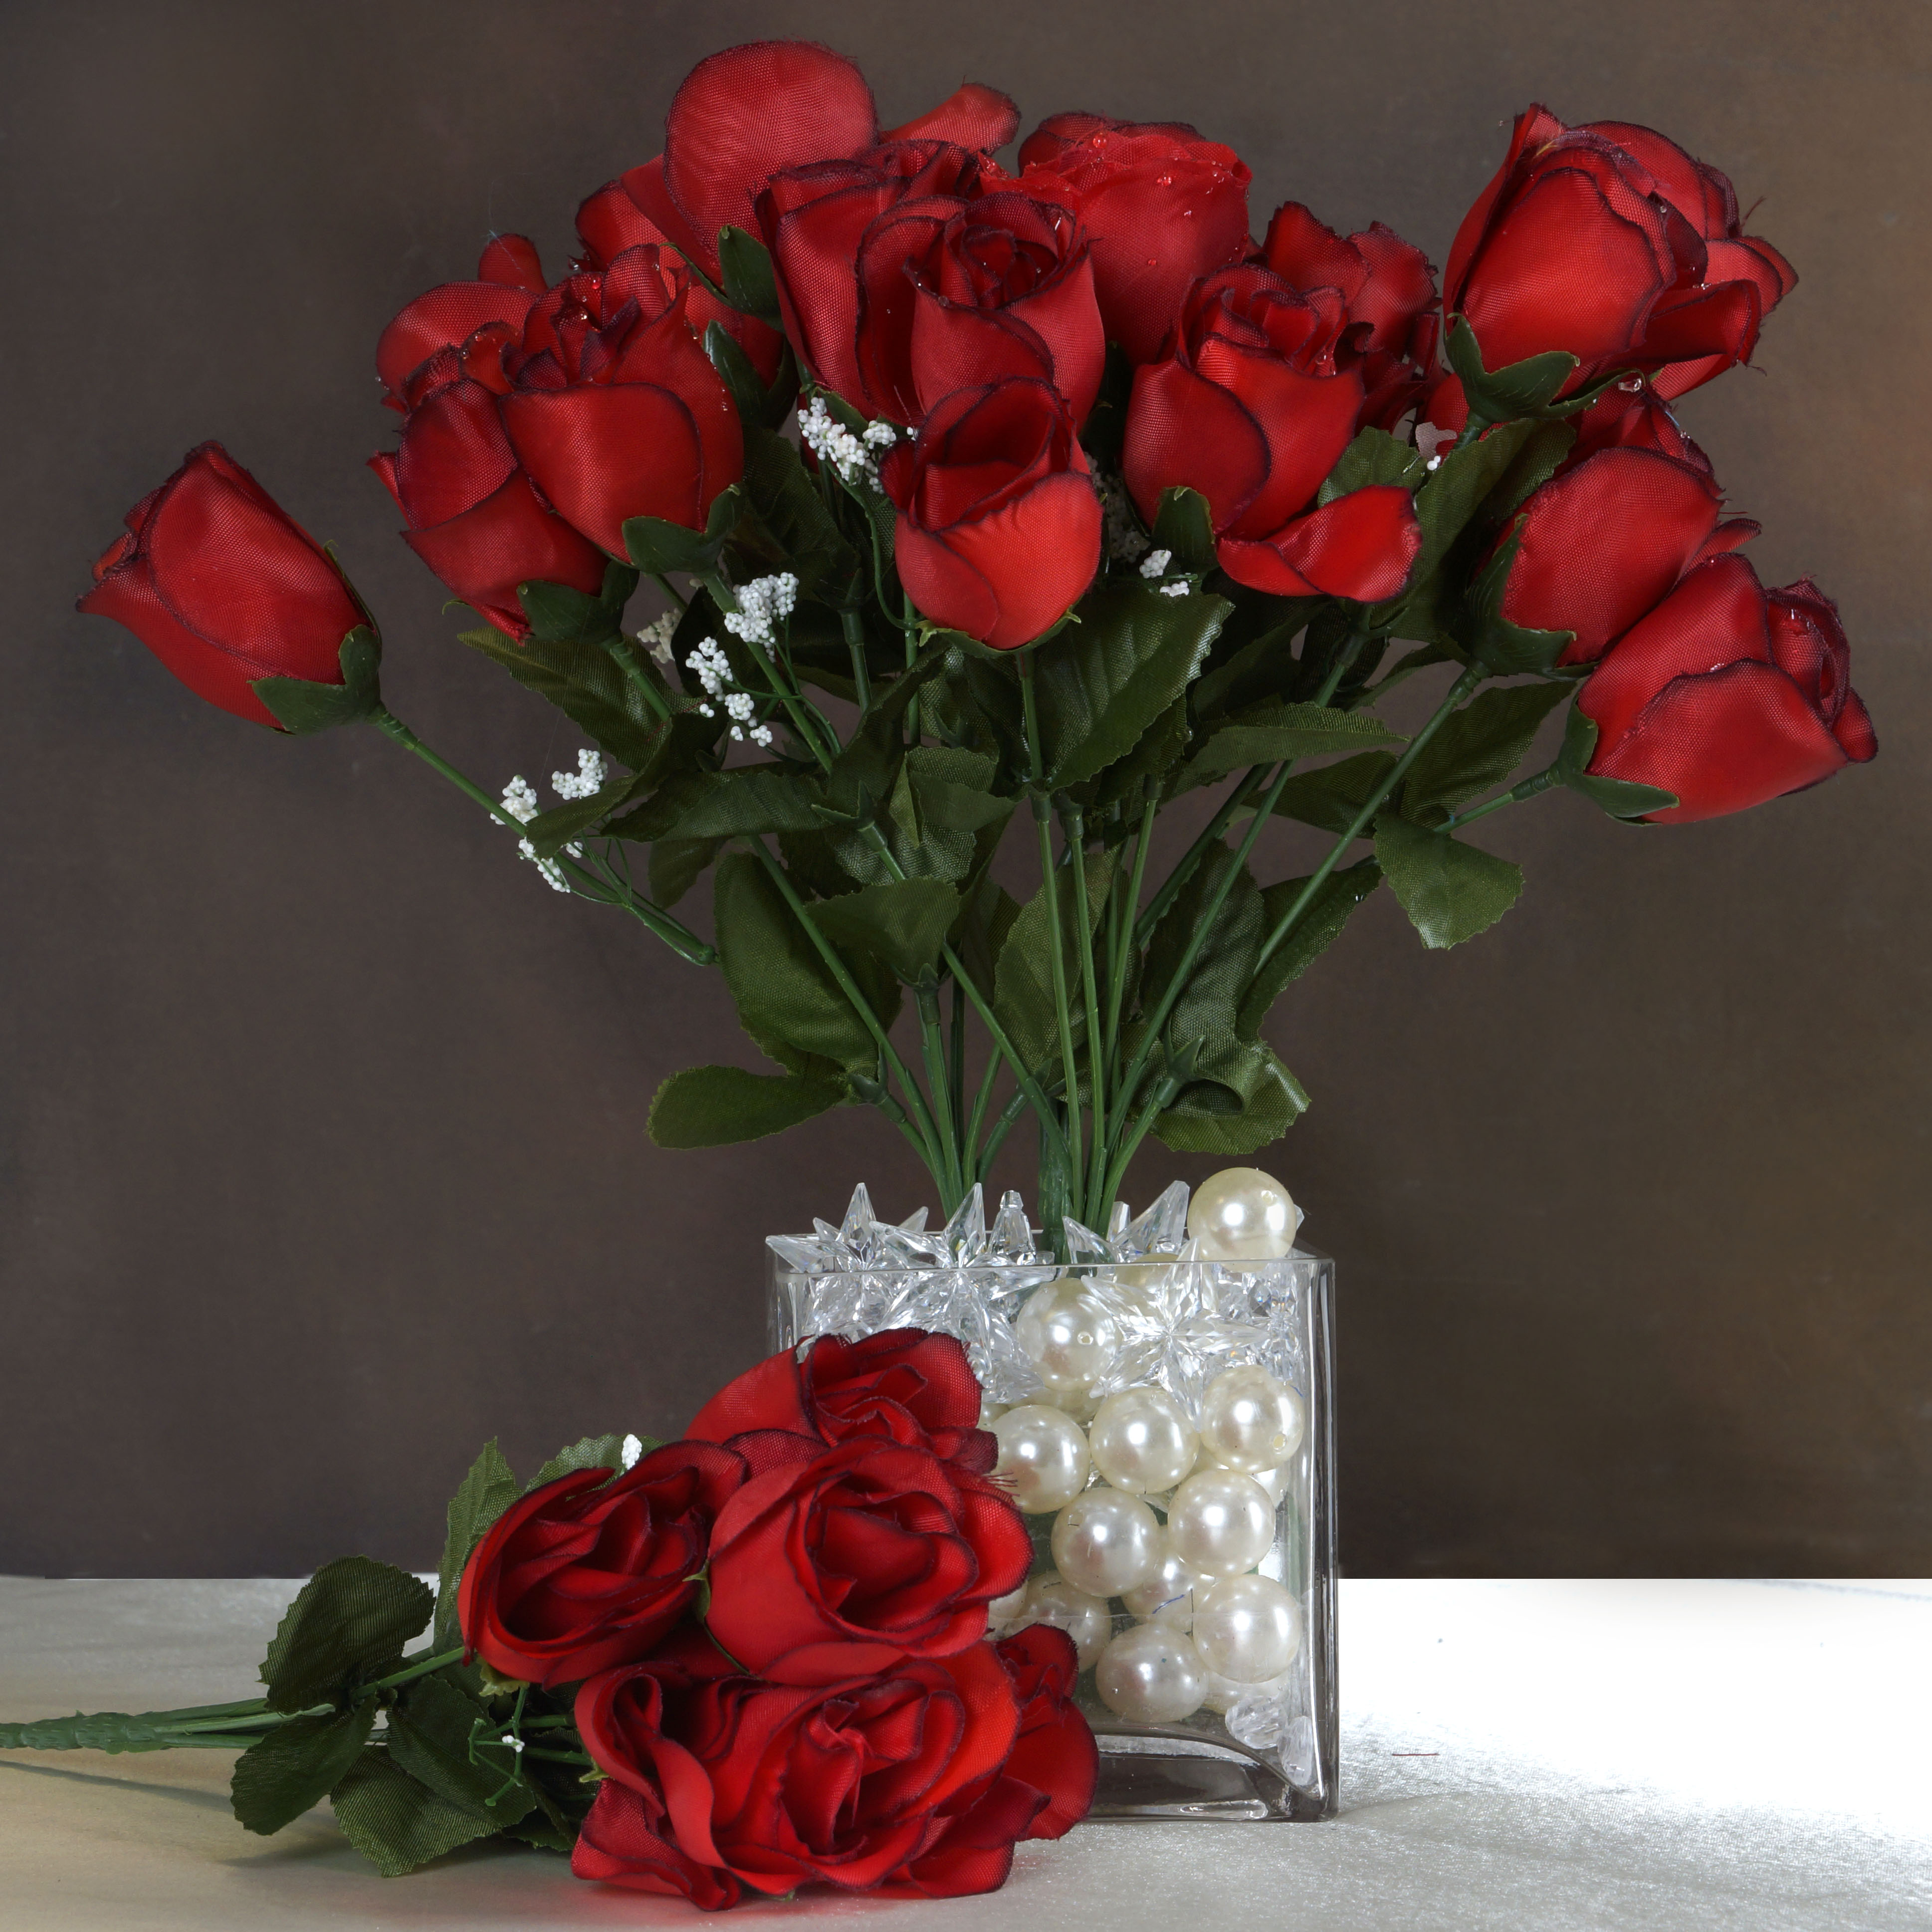 Home Decor Wholesale Suppliers: Efavormart 84 Artificial Buds Roses For DIY Wedding